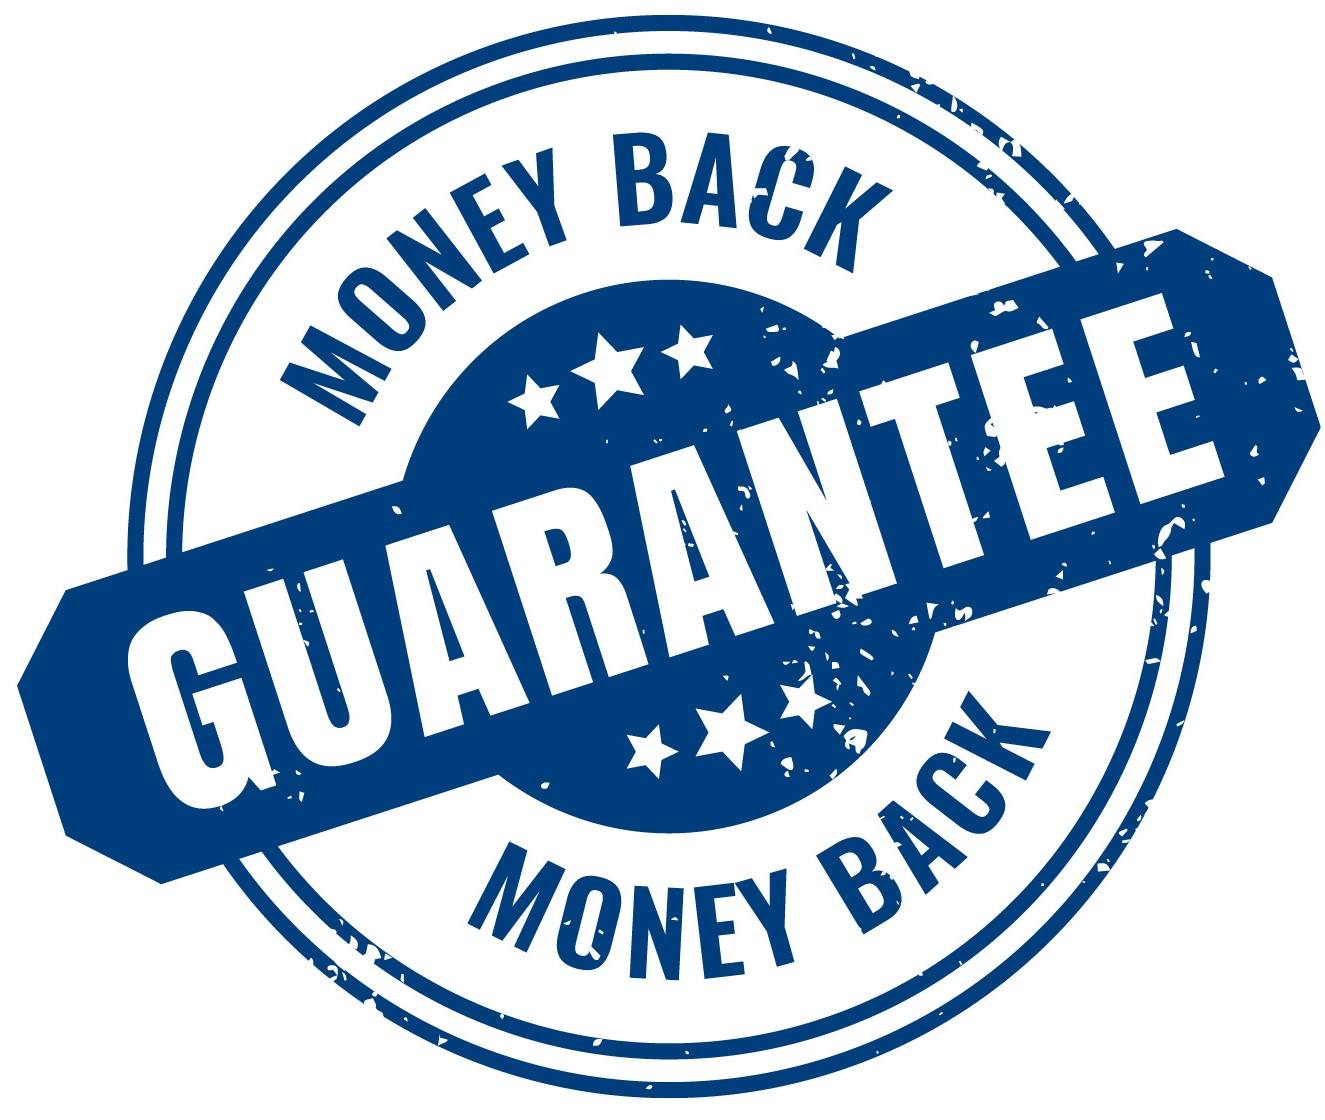 If we don't grow your business, we'll refund you